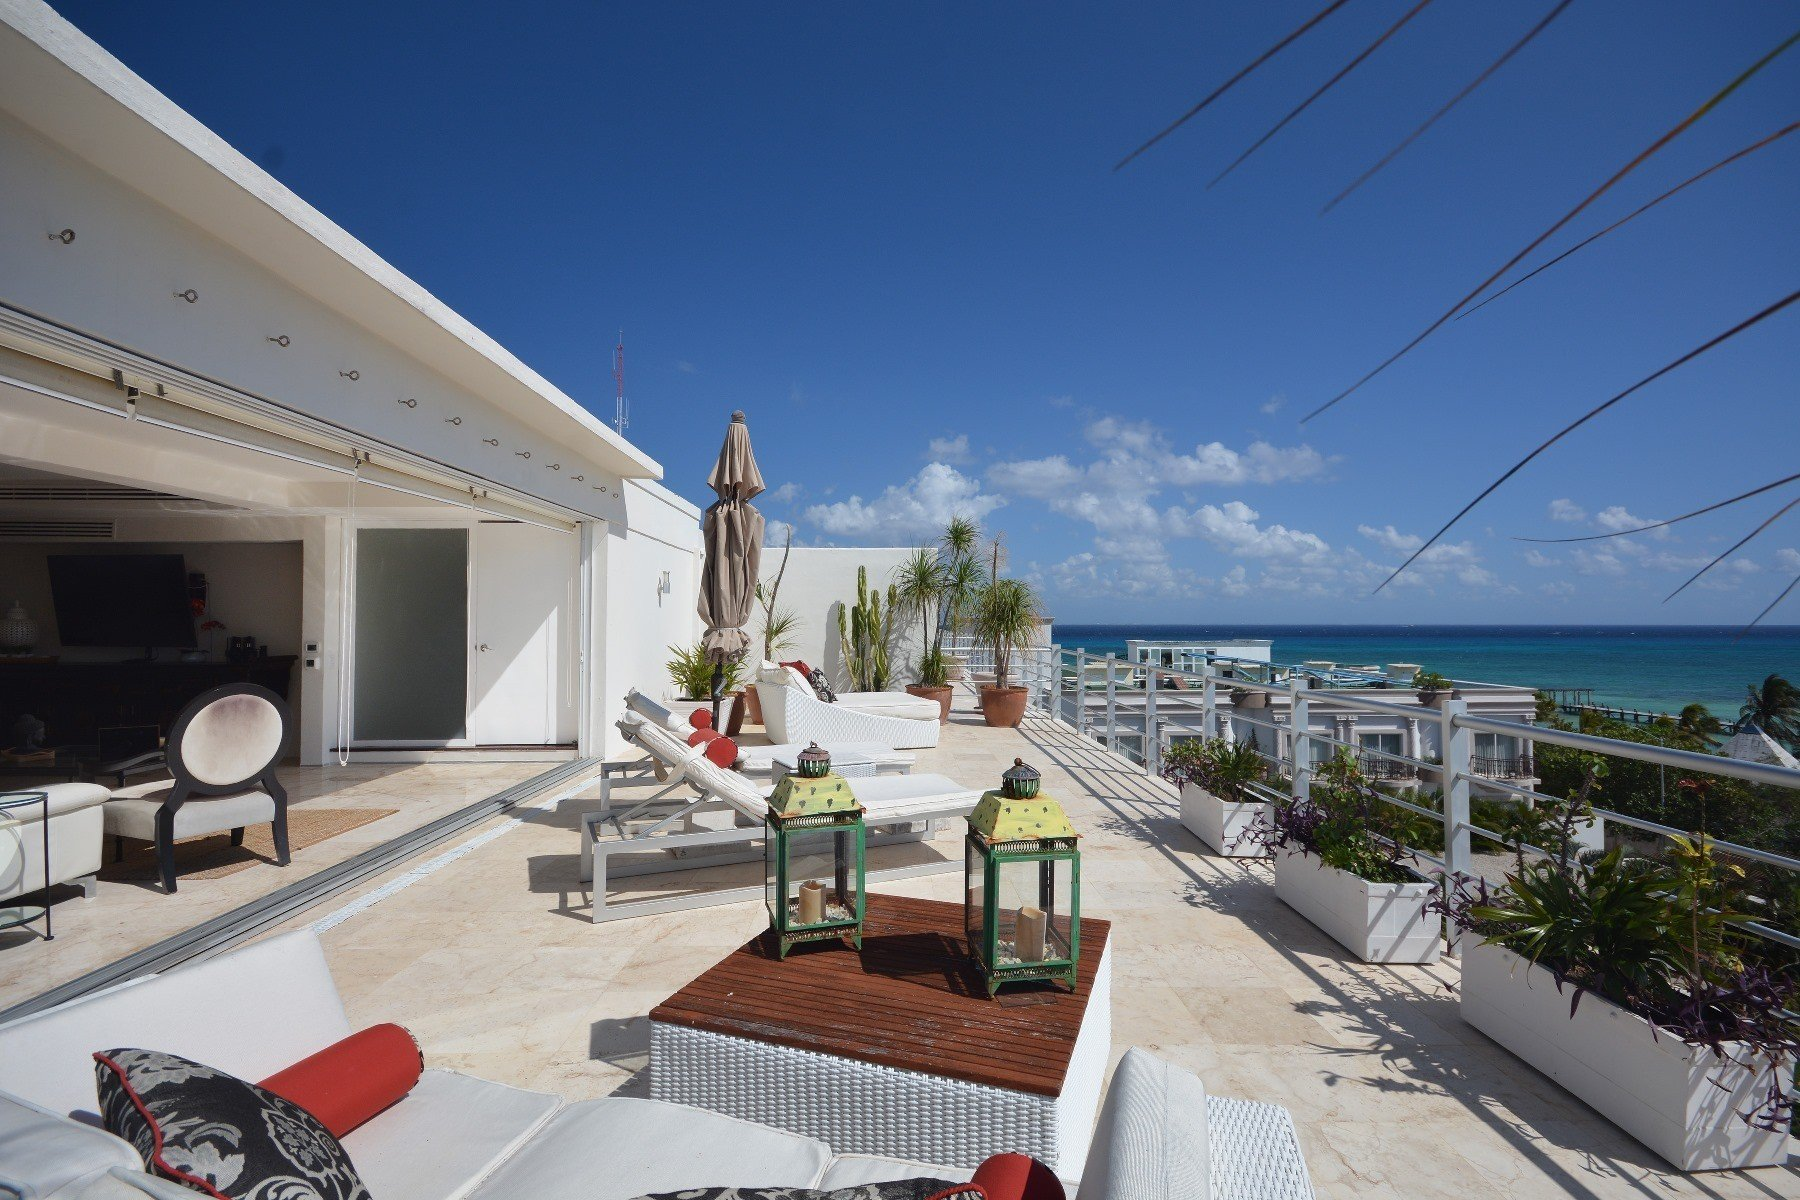 Apartment in Gonzalo Guerrero, Quintana Roo, Mexico 1